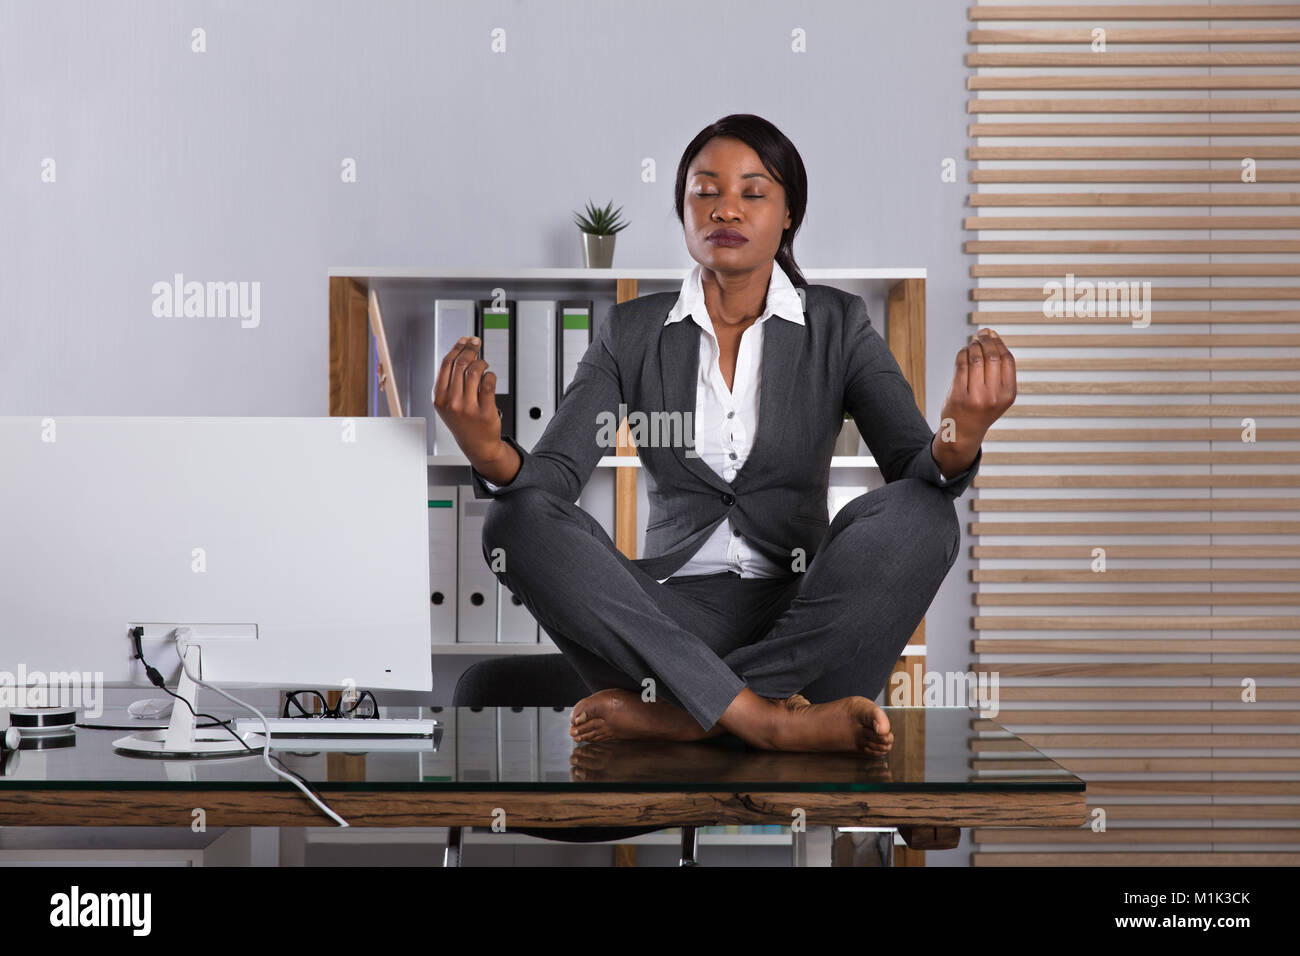 how to meditate in office. Young African Woman Sitting On Desk Meditating In Office - Stock Image How To Meditate